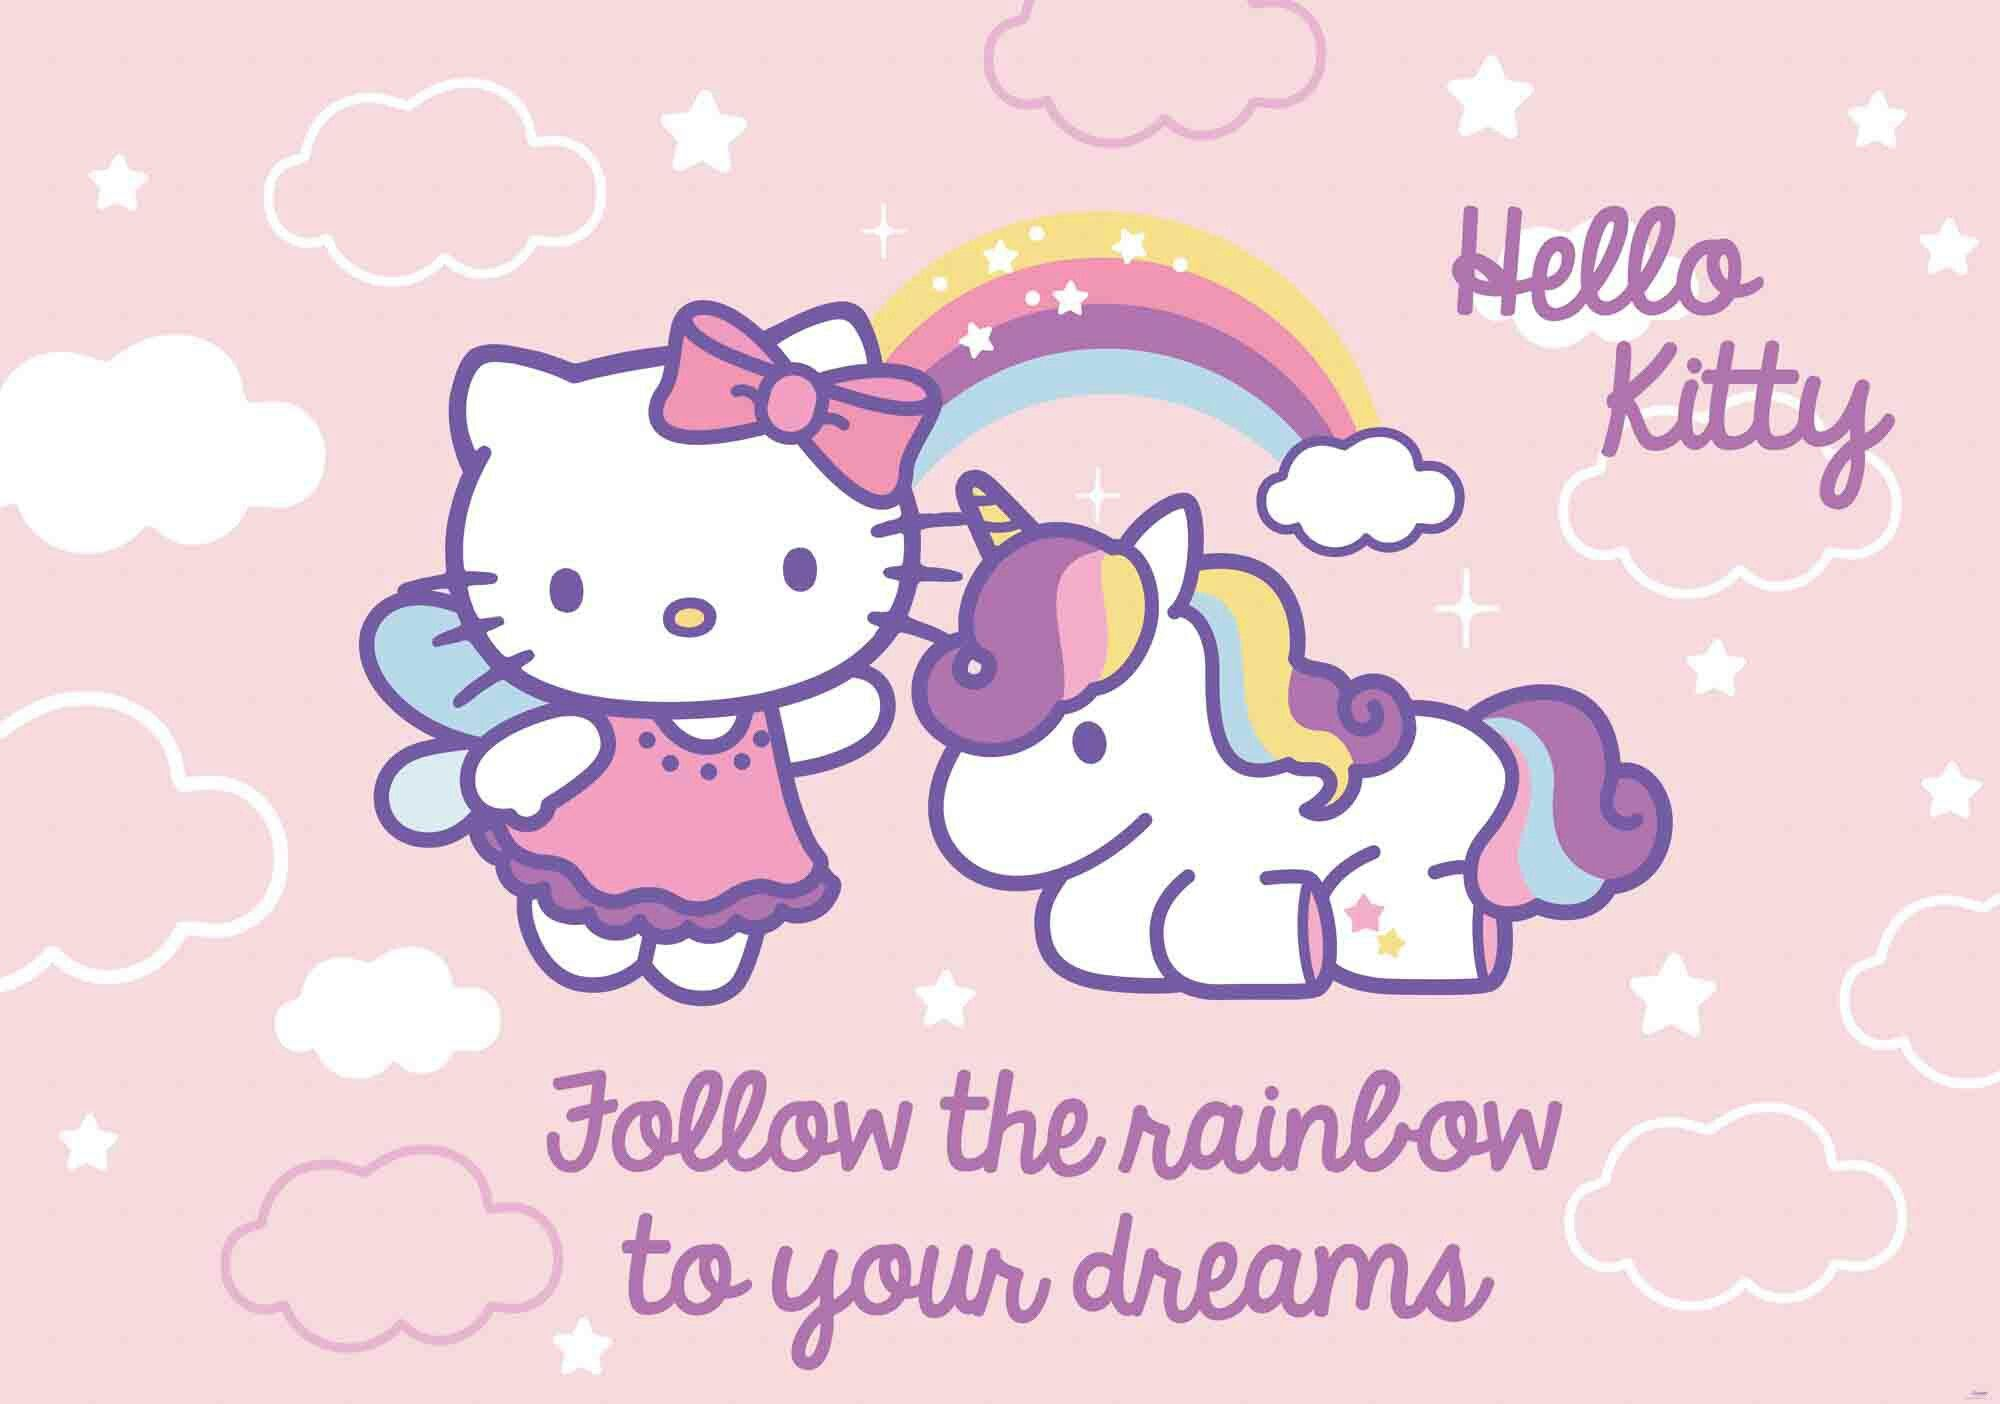 Hello Kitty Images, Hello Kitty Stuff, Sanrio Hello Kitty, Cat